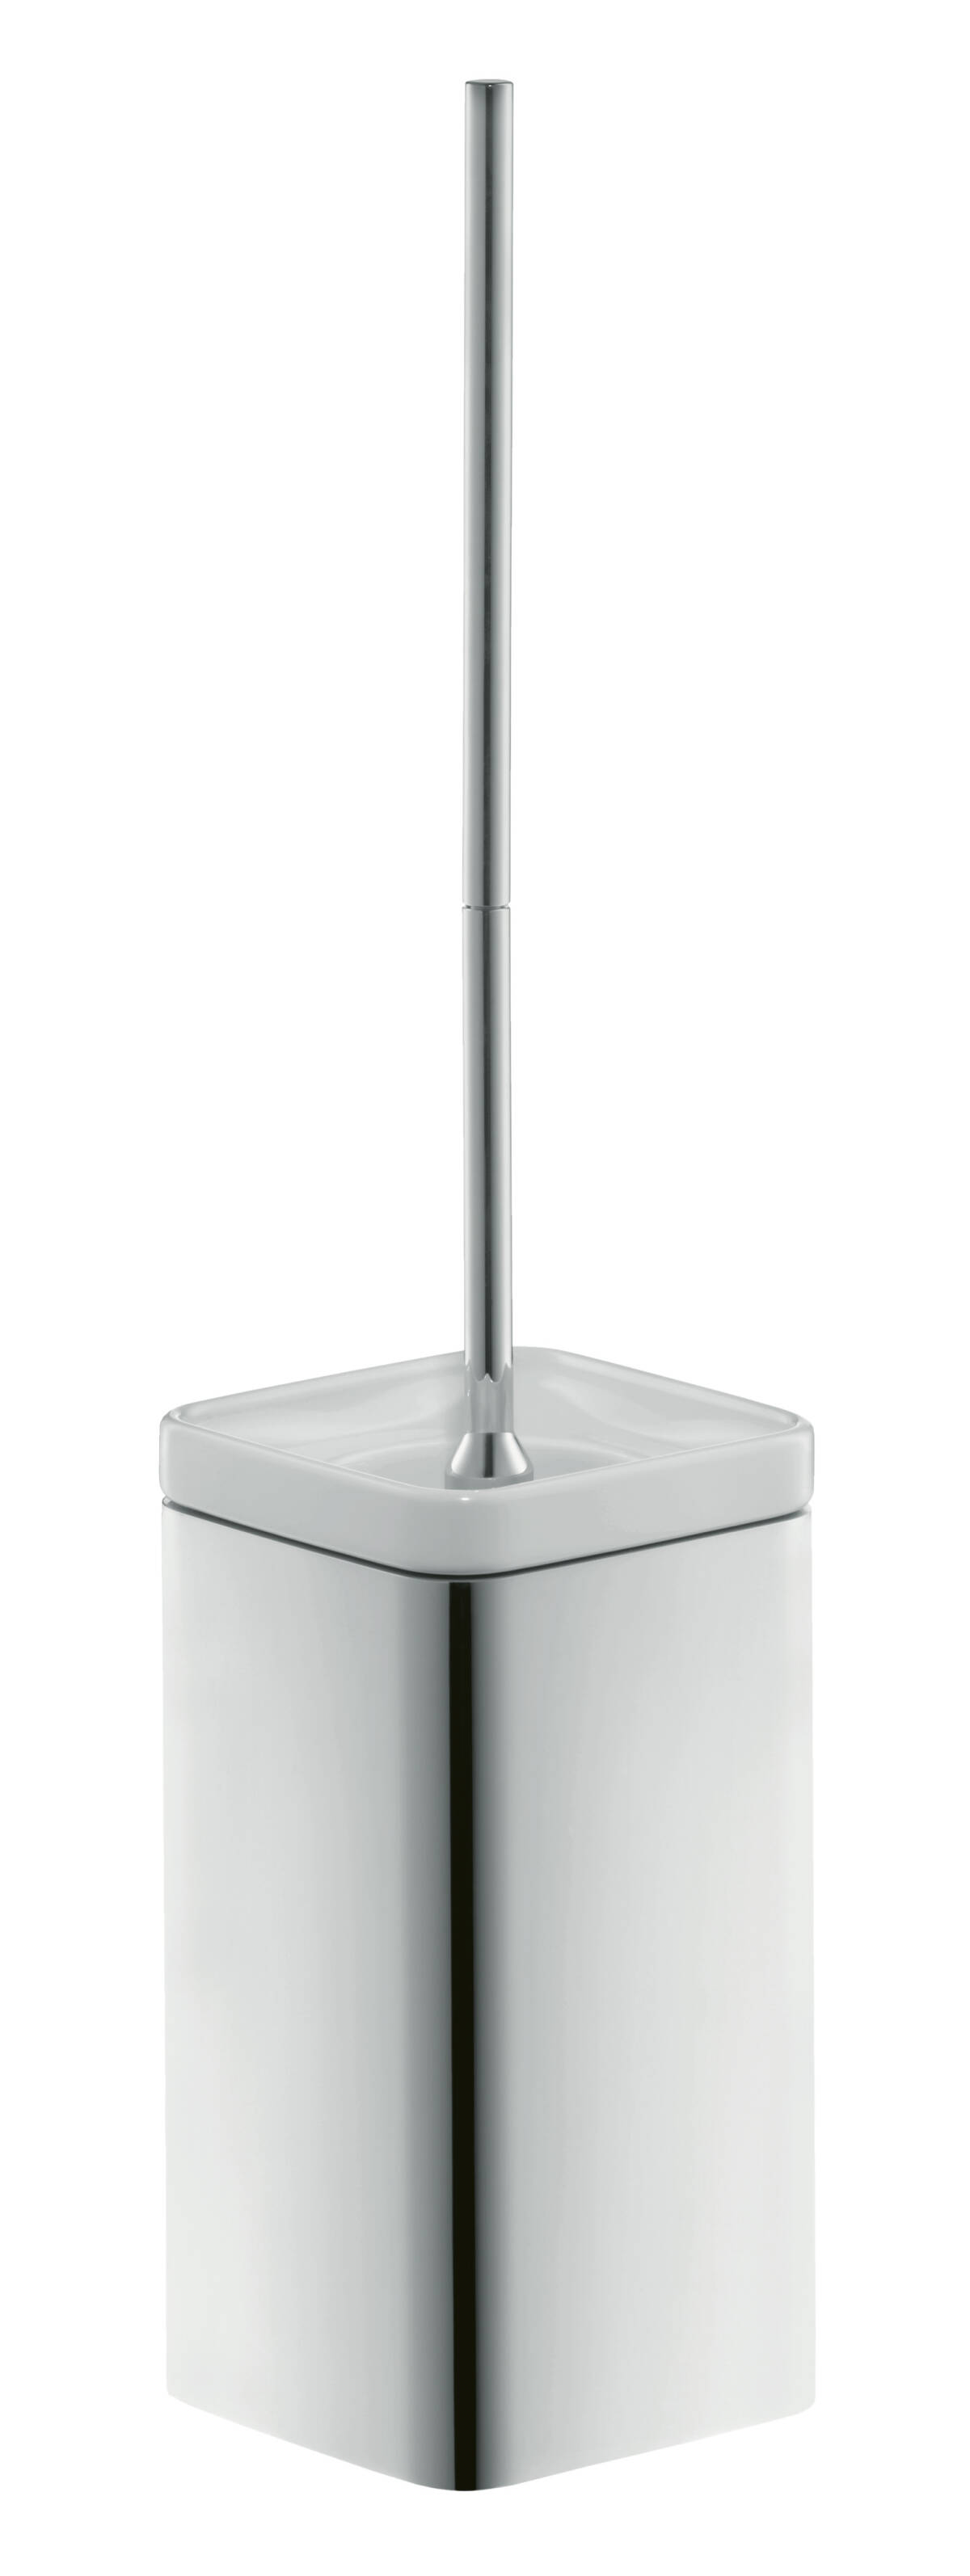 Toilet brush holder wall-mounted, Chrome, 42435000